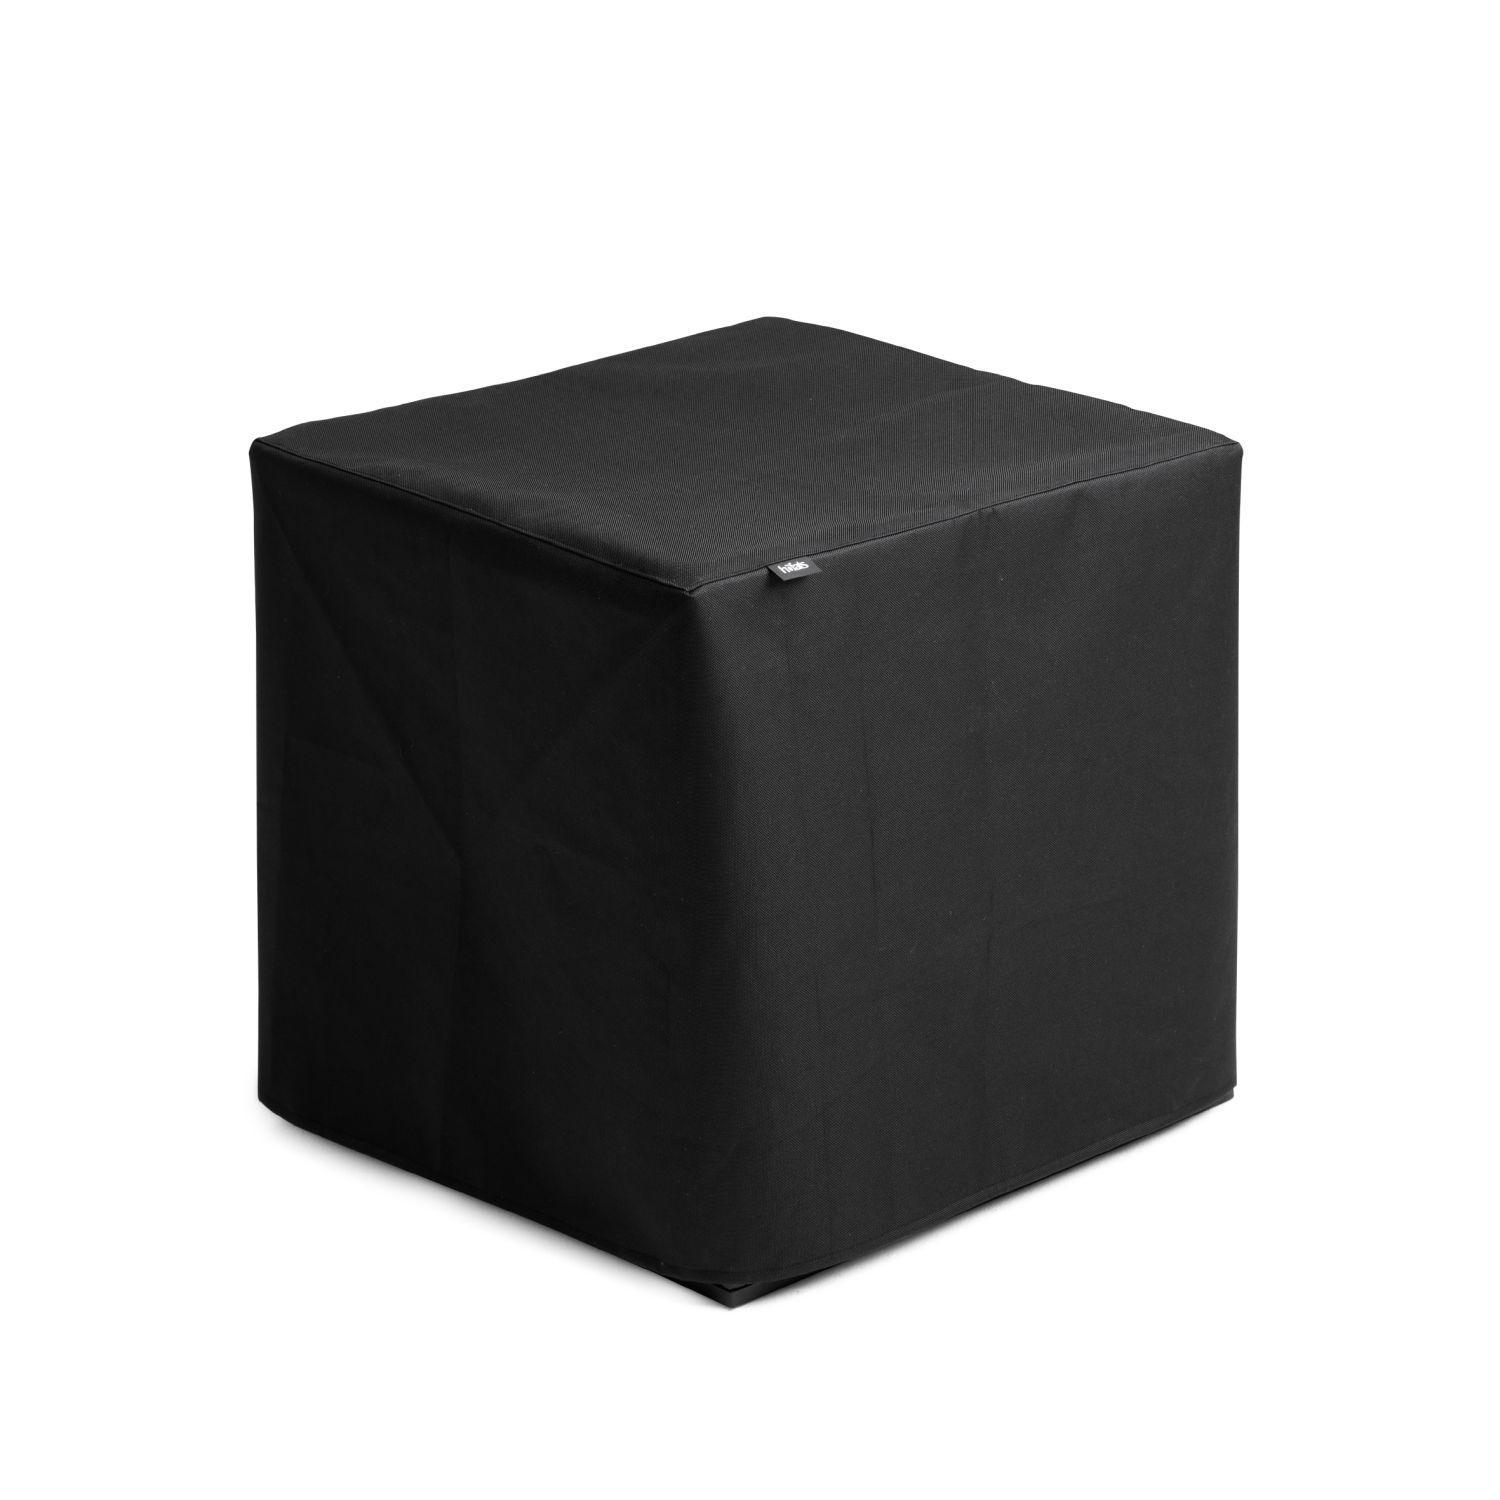 Housse de protection brasero cube